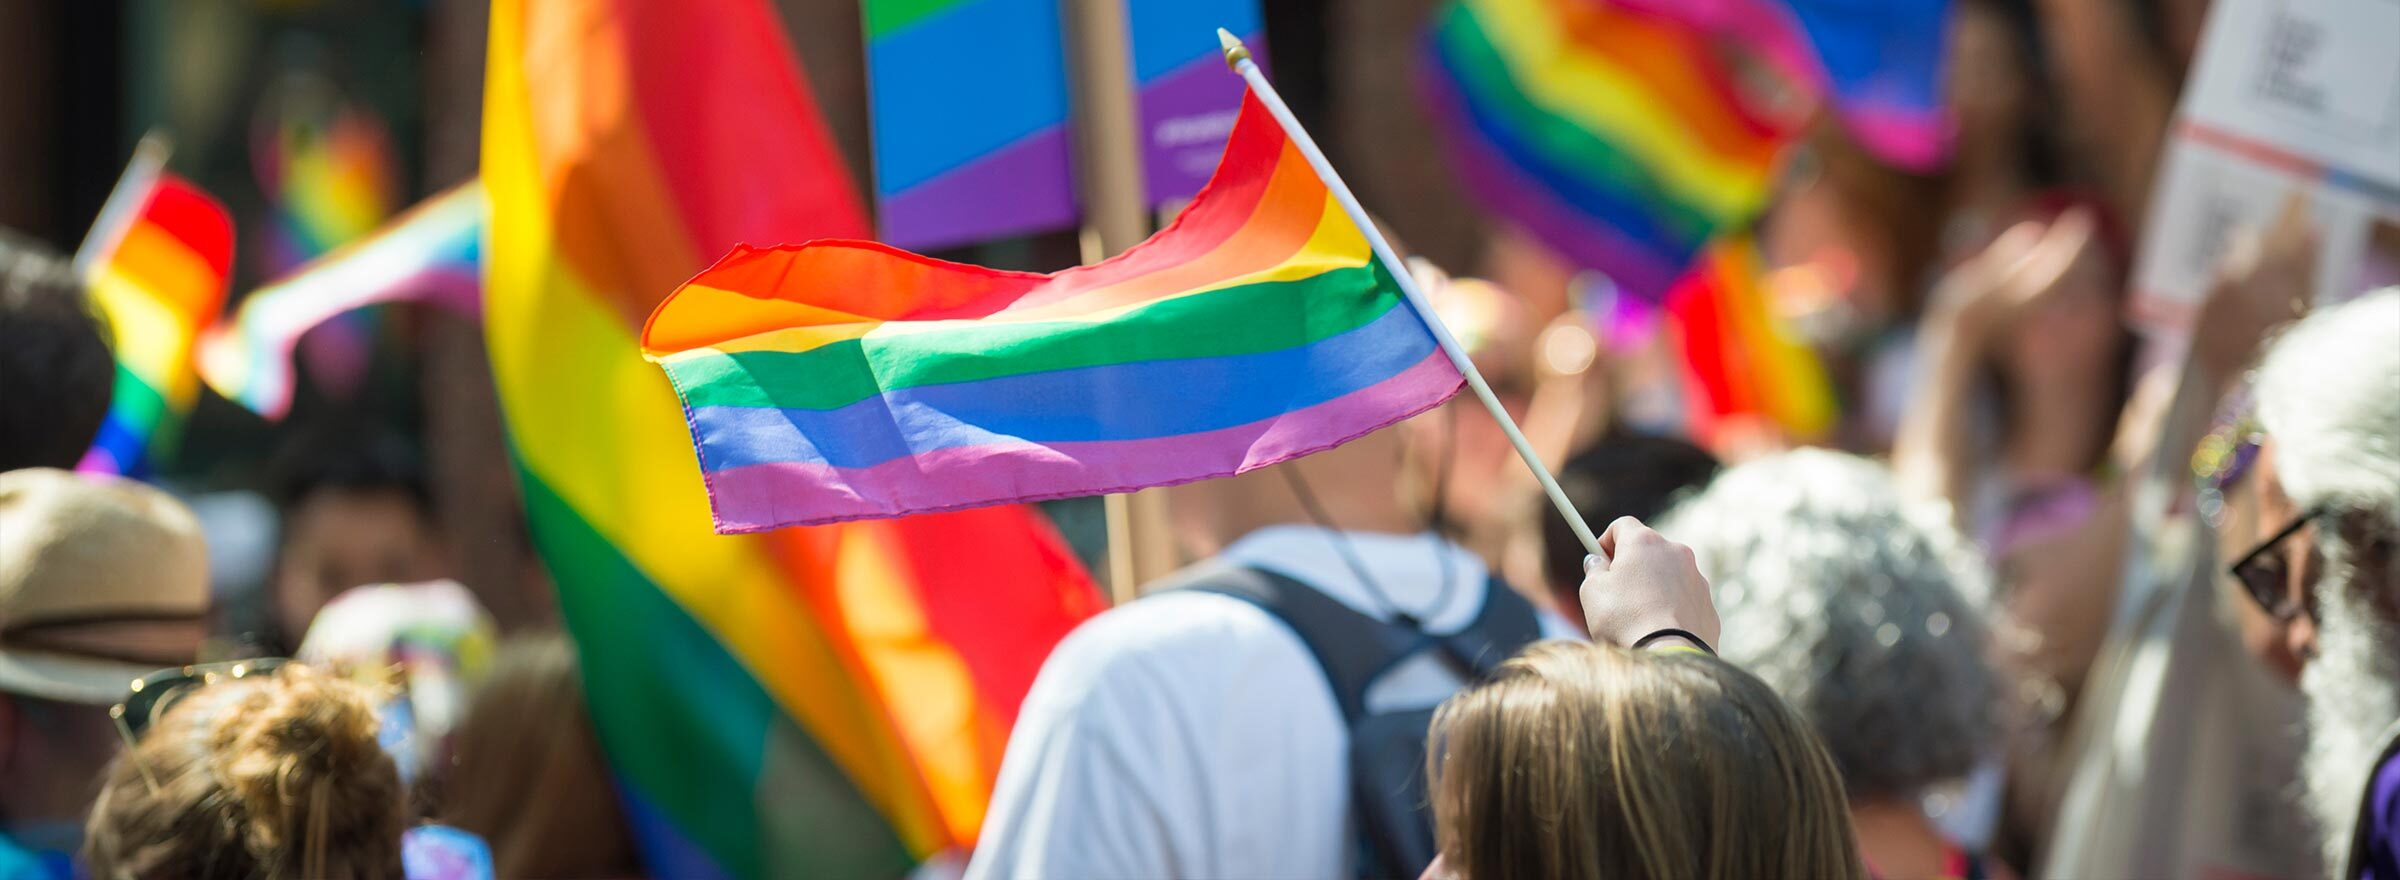 a group of people flying rainbow flags